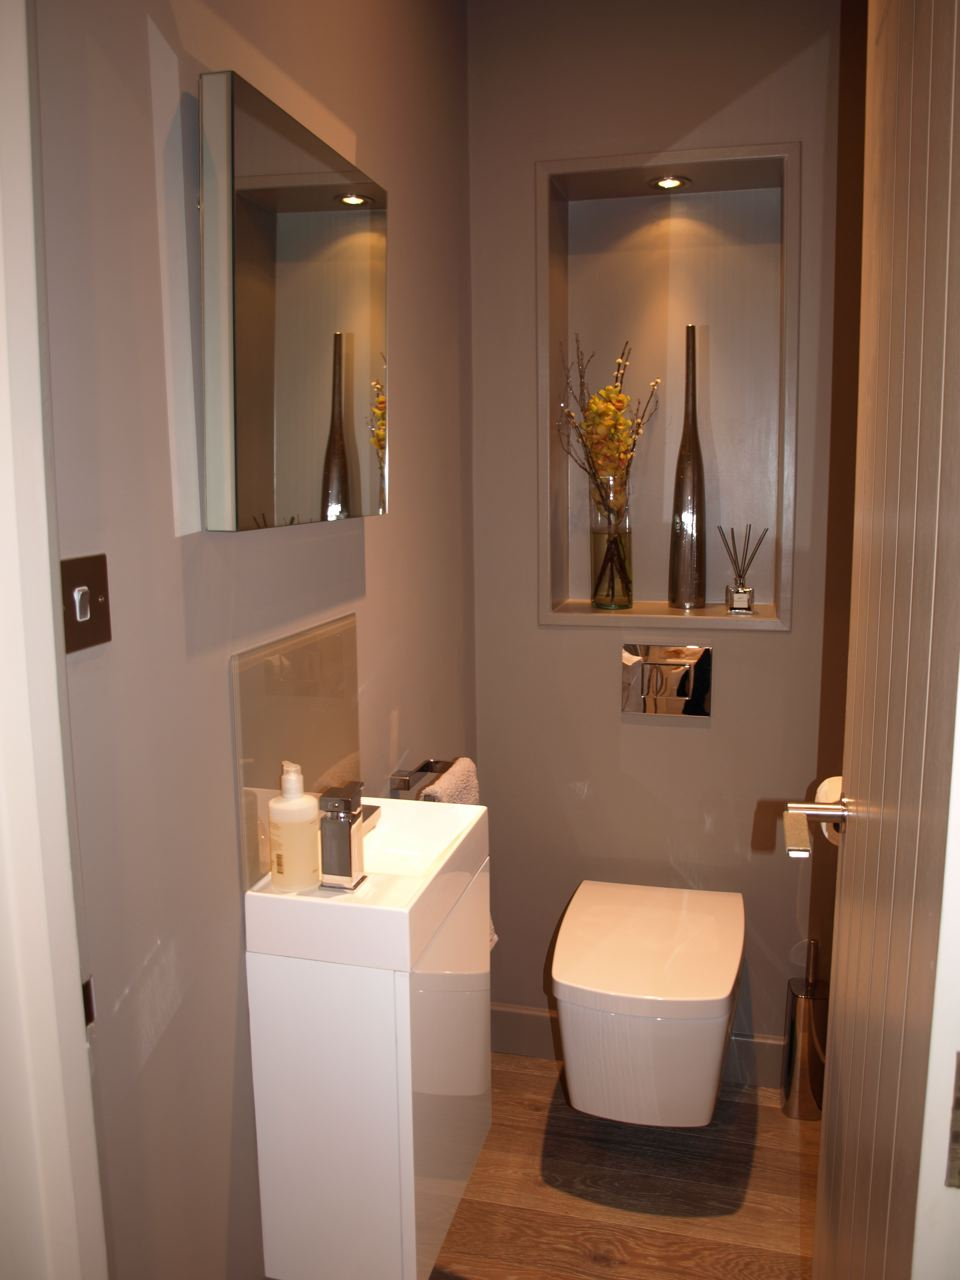 Bespoke mirror_wall hung toilet